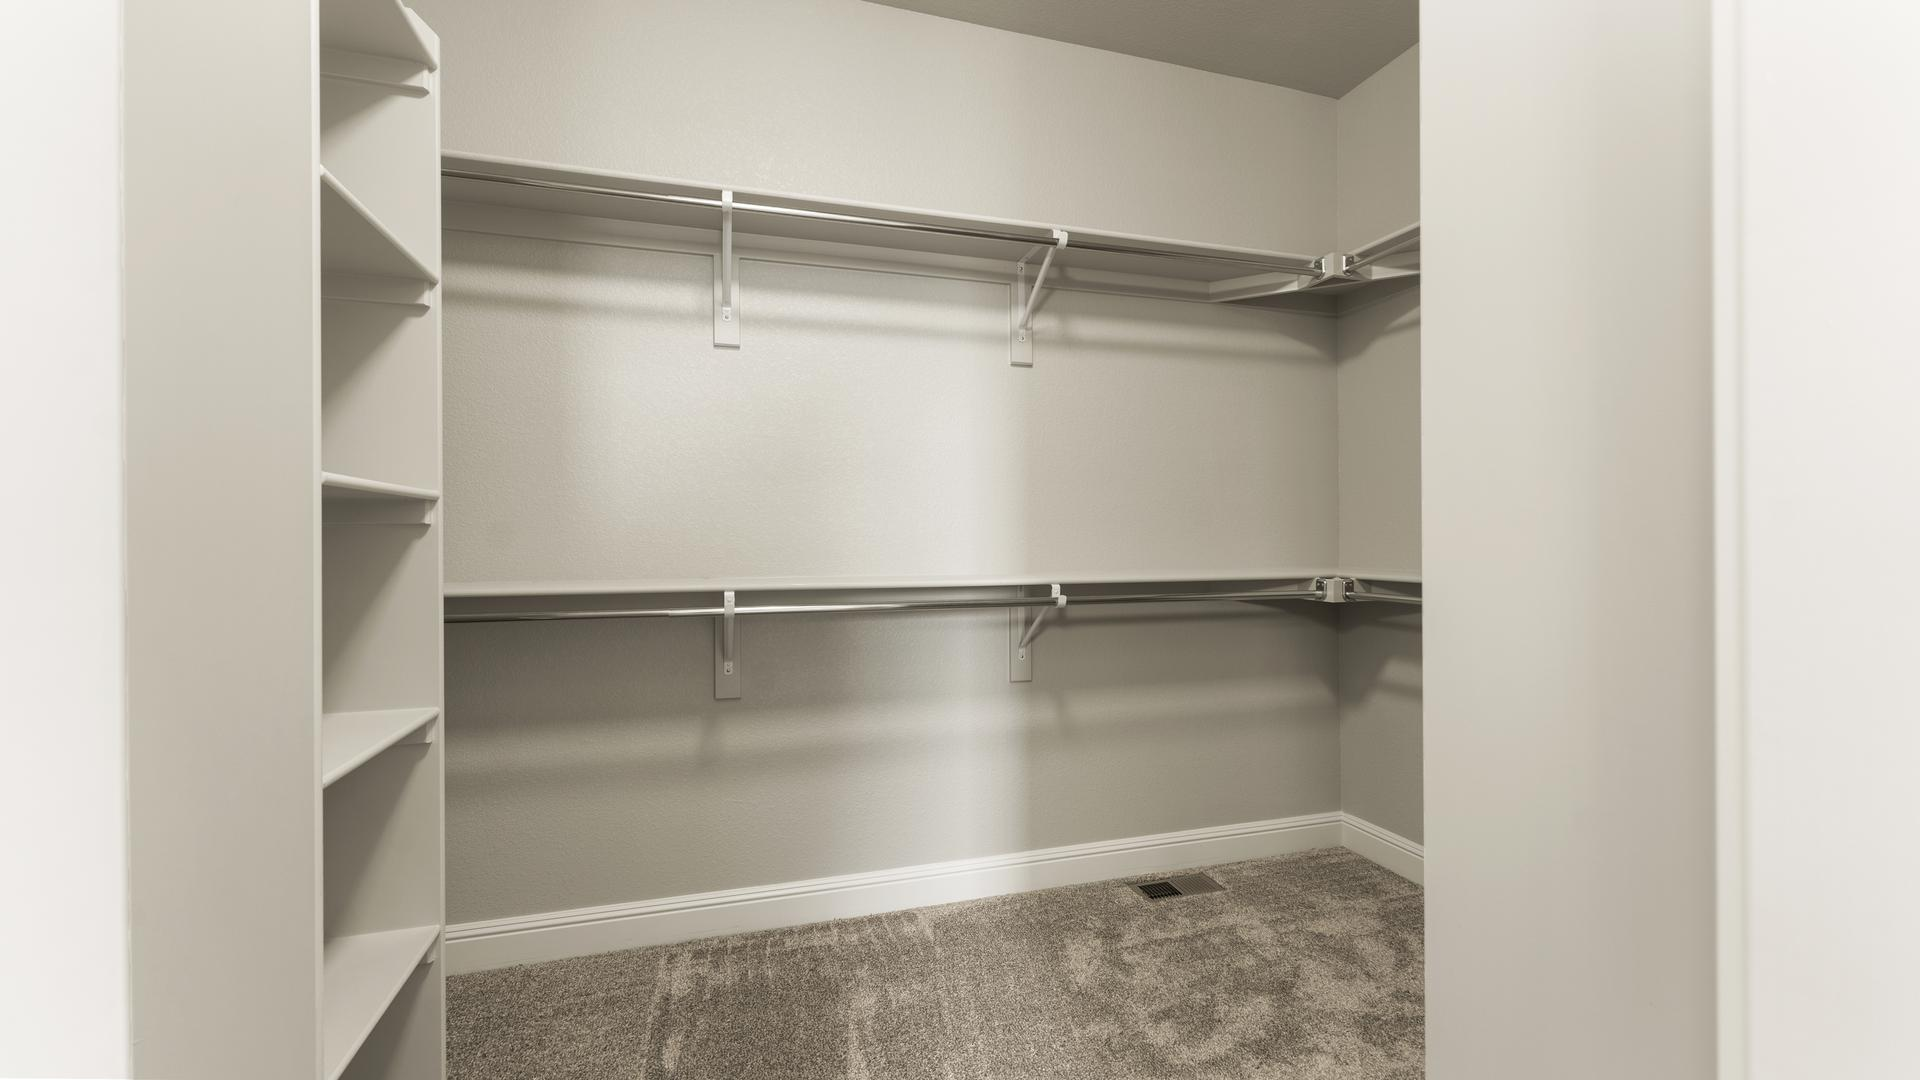 Master Closet - Not Actual Home - Finishes Will Vary